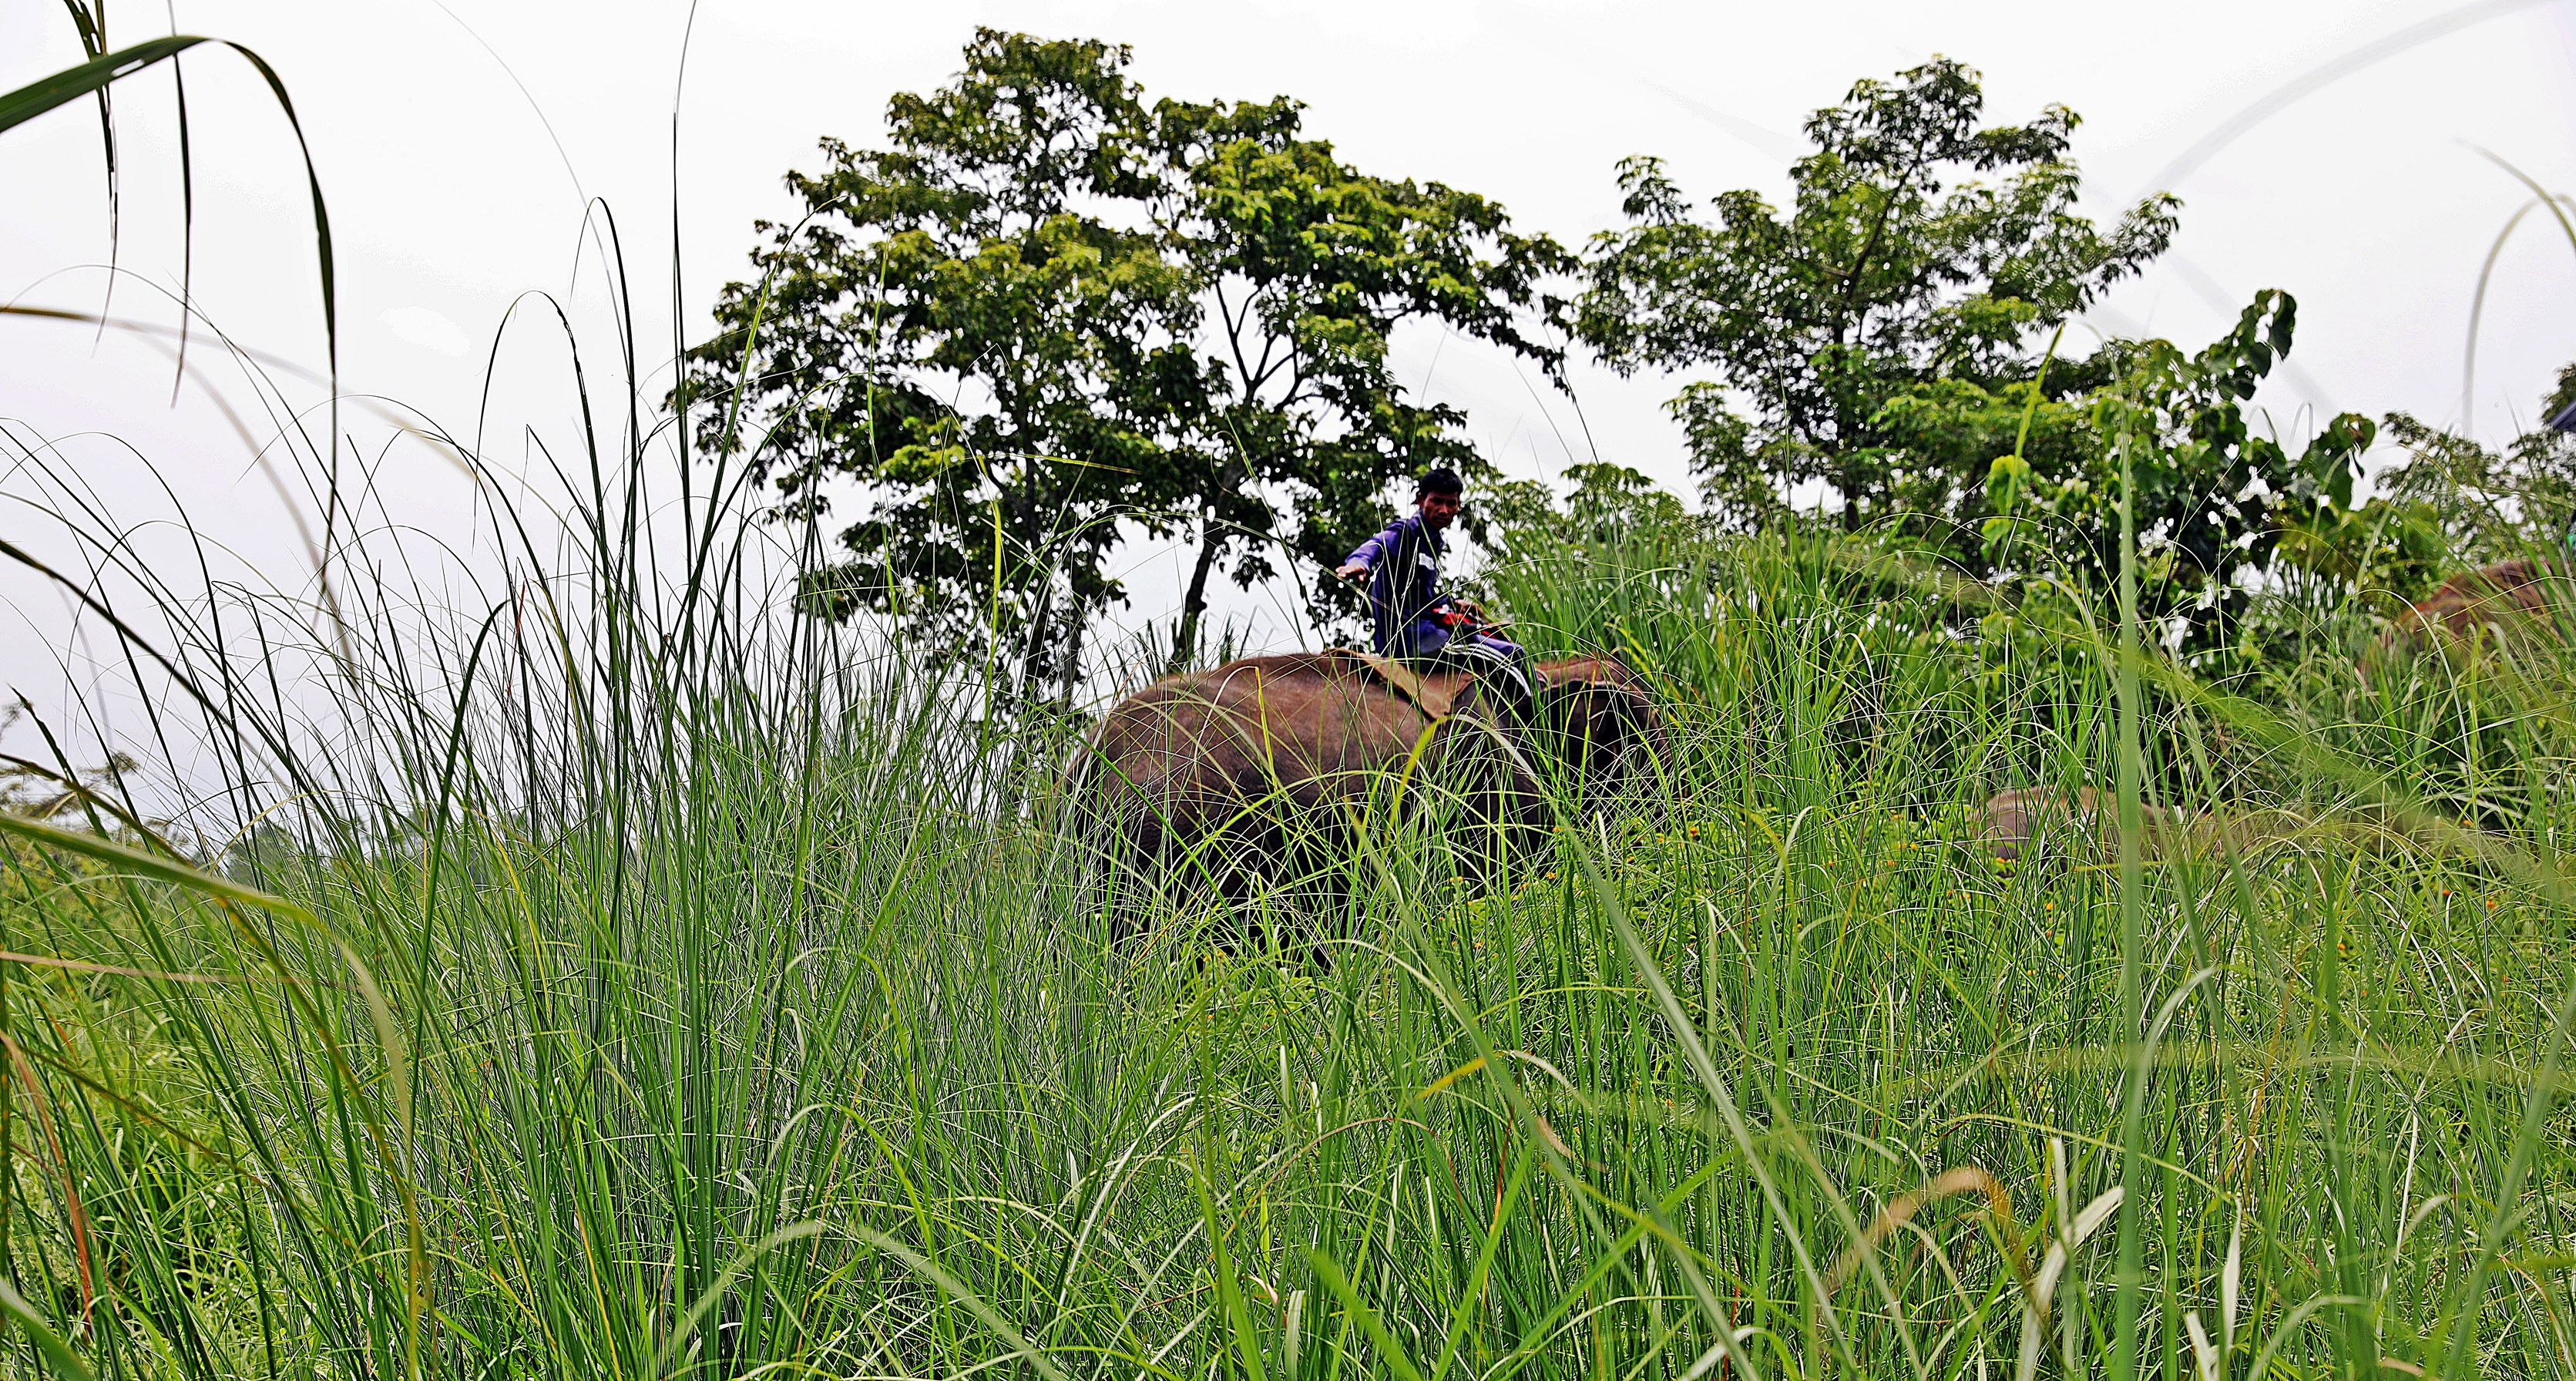 Park Ranger patrolling on an elephant